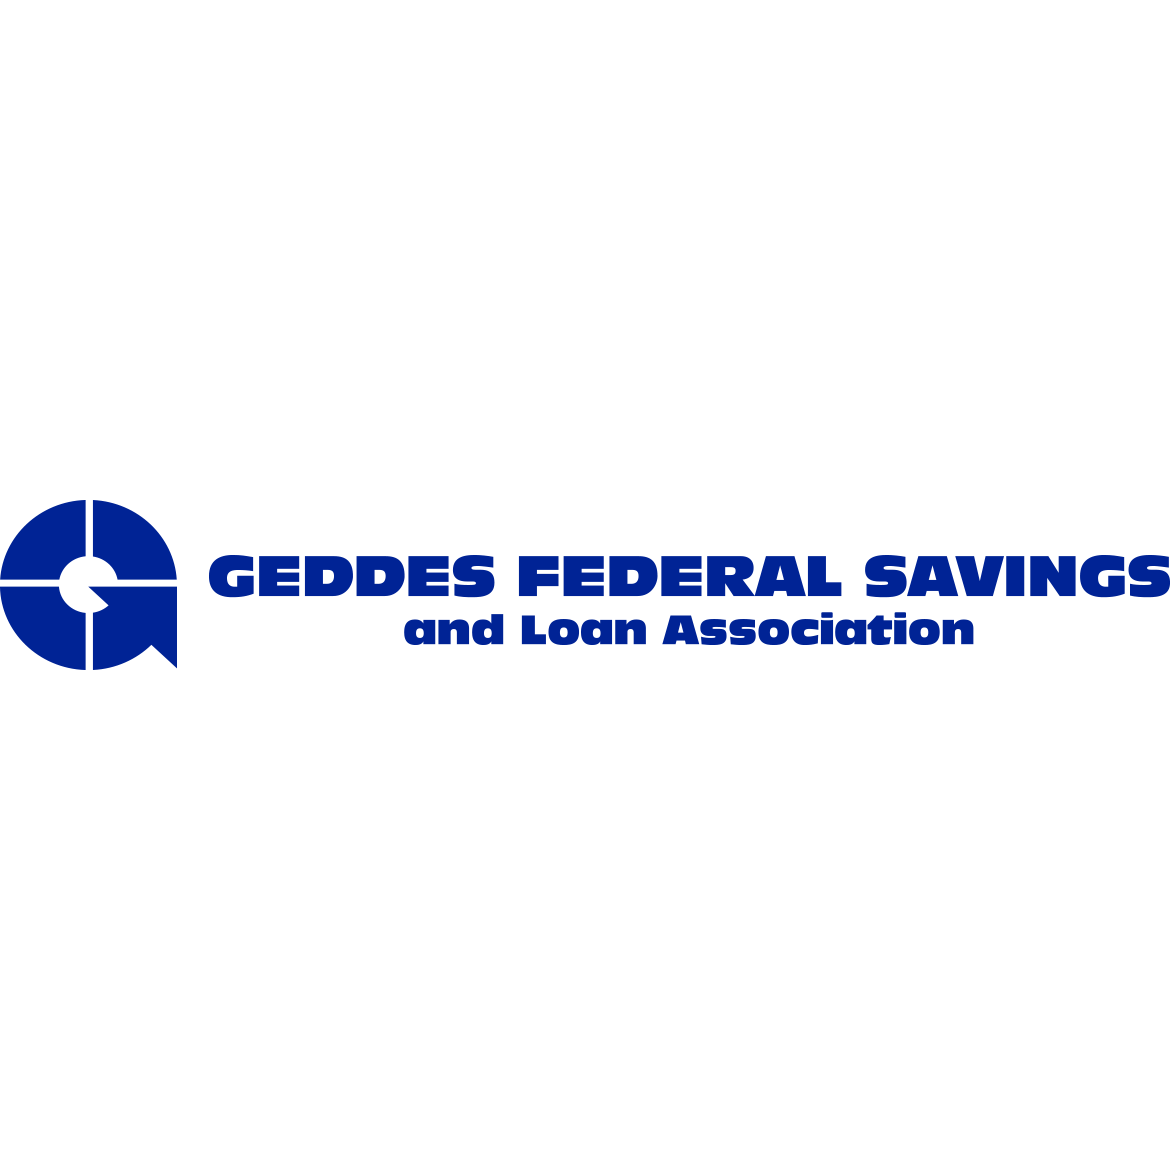 Geddes Federal Savings and Loan Association